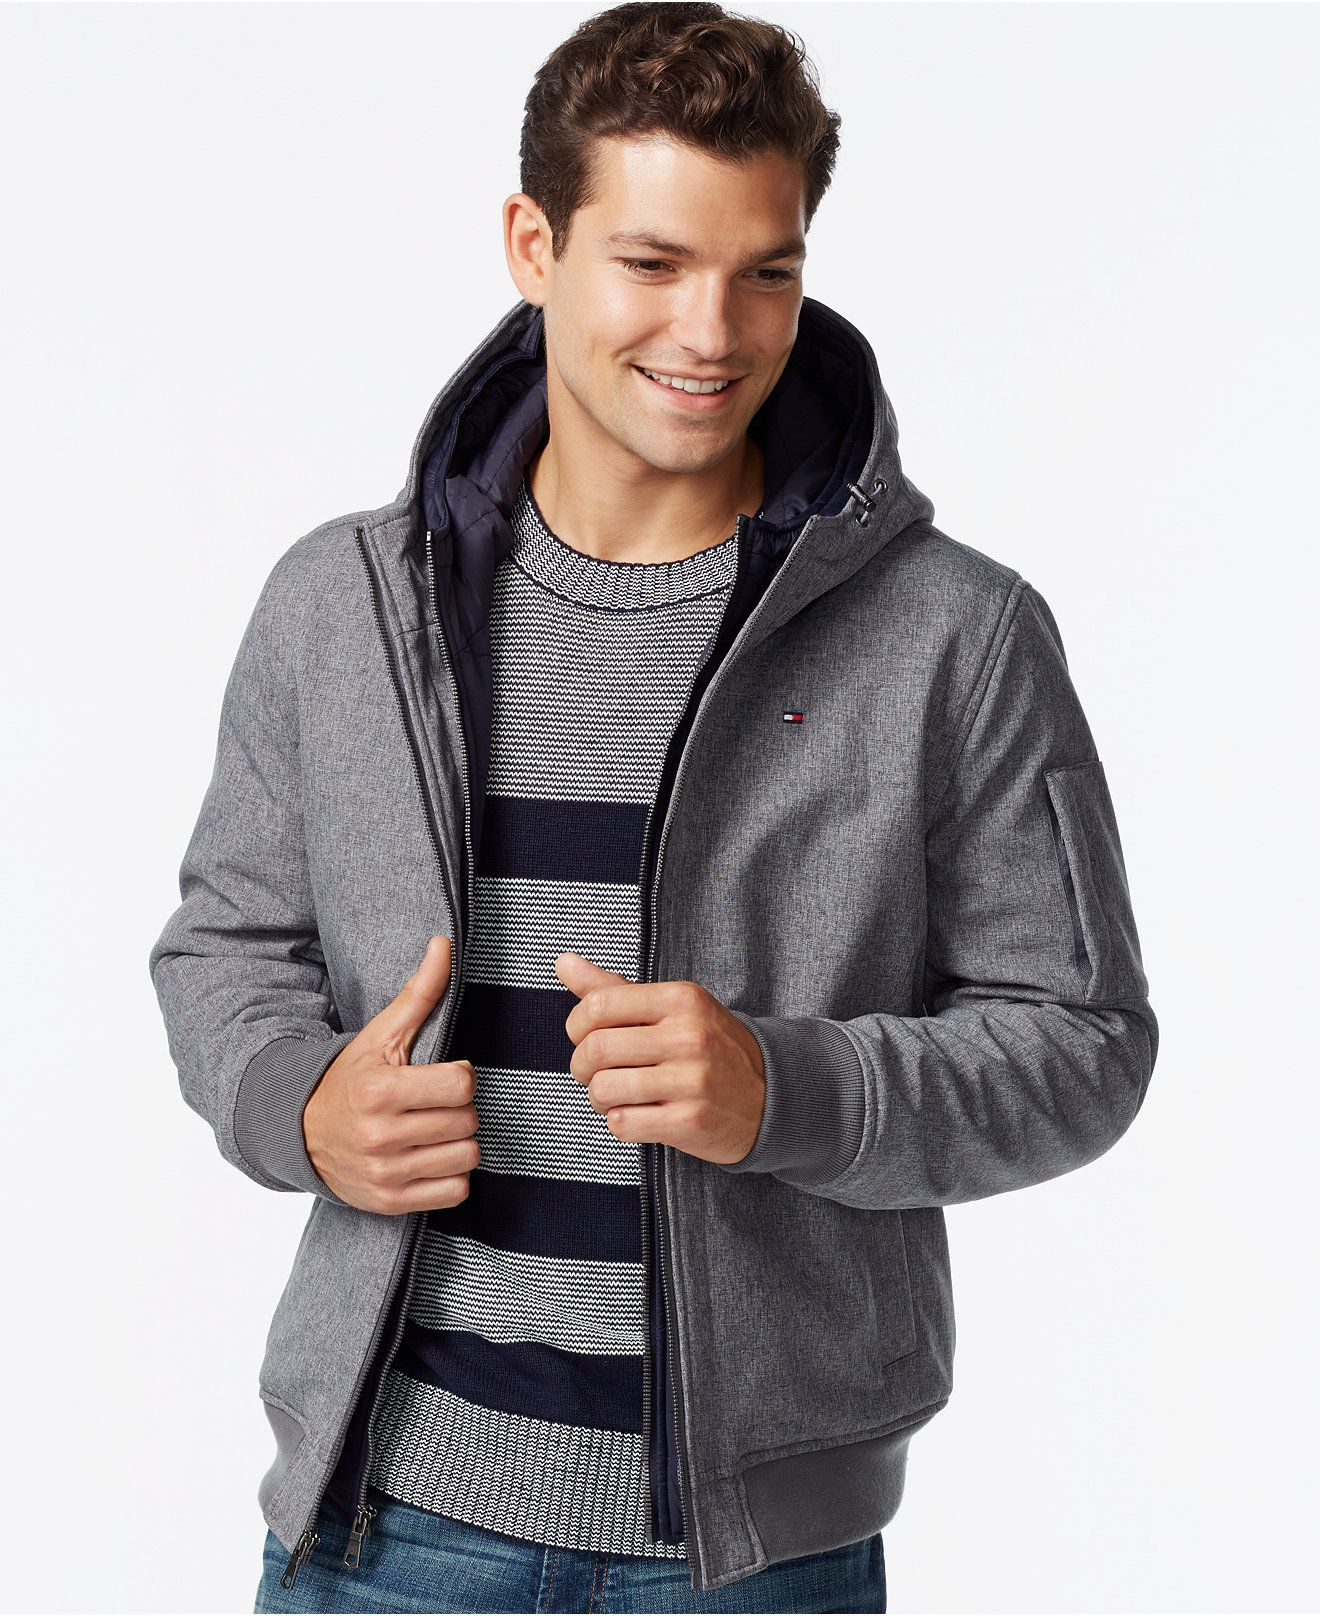 Tommy Hilfiger Soft Shell Hooded Bomber Jacket With Bib Reviews Coats Jackets Men Macy S Hooded Bomber Jacket Mens Big And Tall Bomber Coat [ 1616 x 1320 Pixel ]